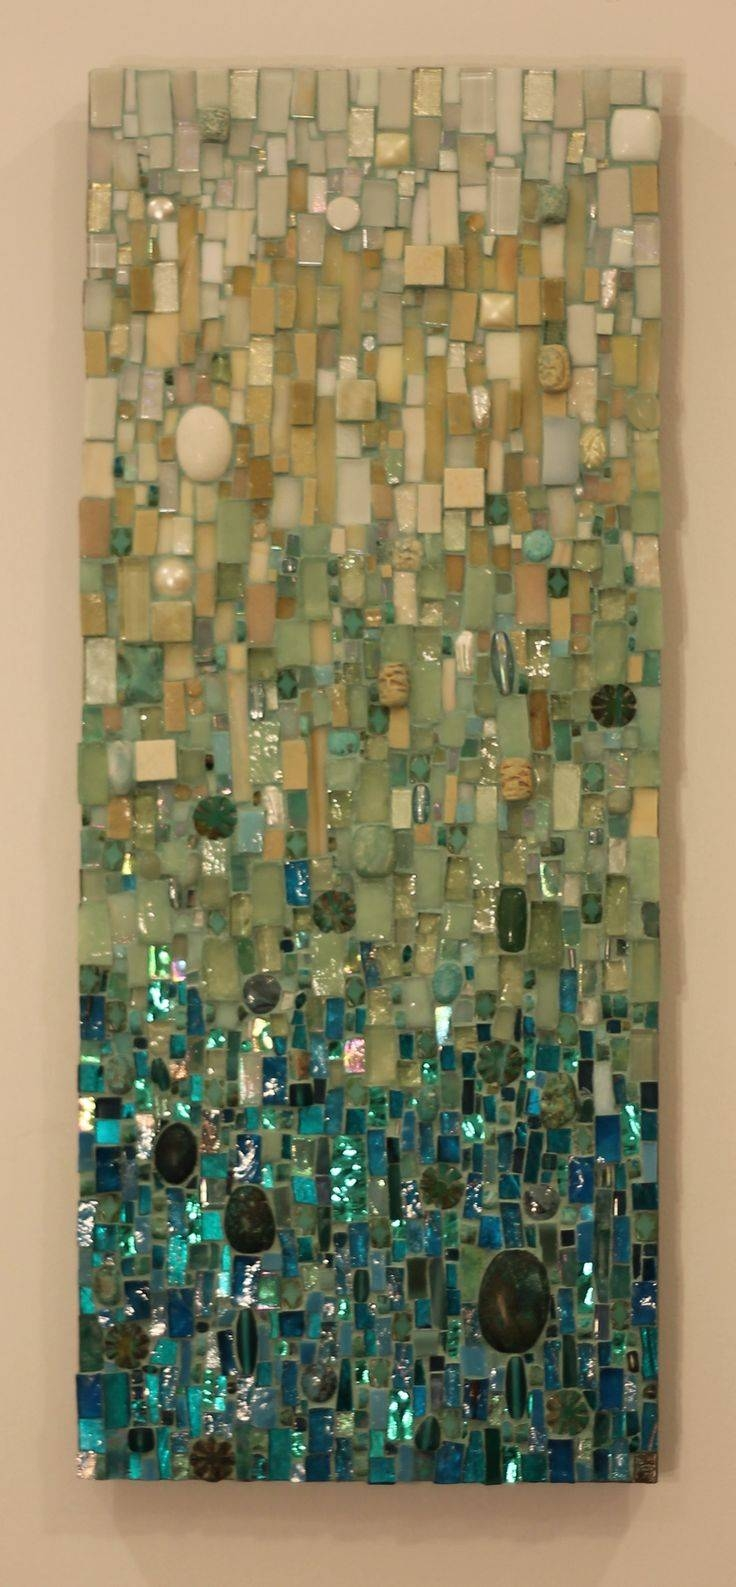 25+ Unique Glass Wall Art Ideas On Pinterest | Fused Glass Art With Regard To Current Filigree Wall Art (View 18 of 30)